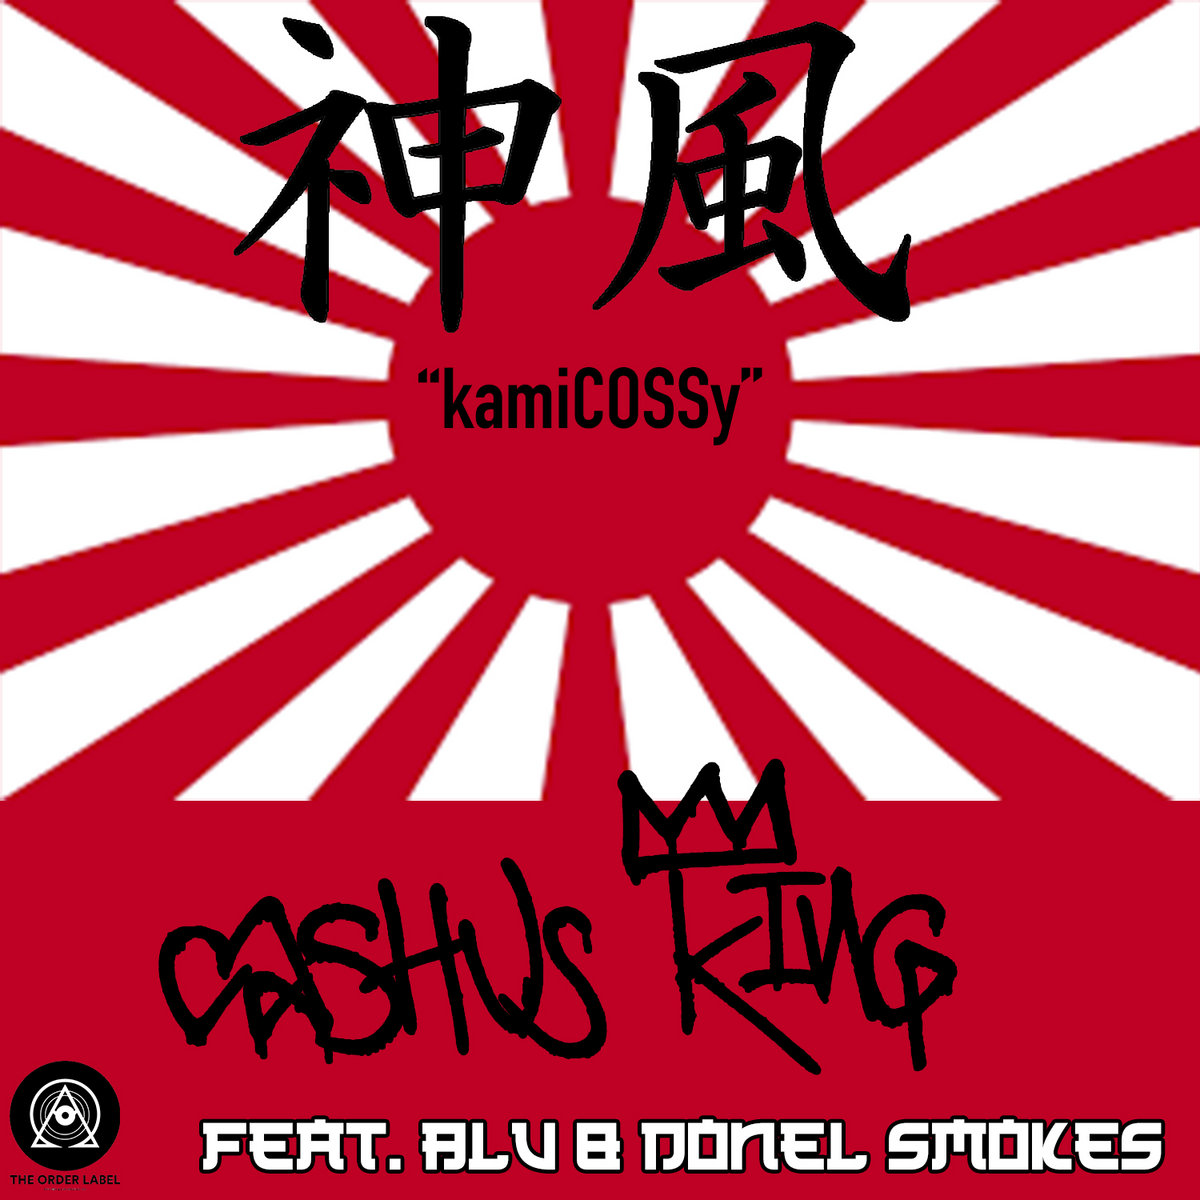 Kamico_____y_feat._blu___donel_smokes__single_